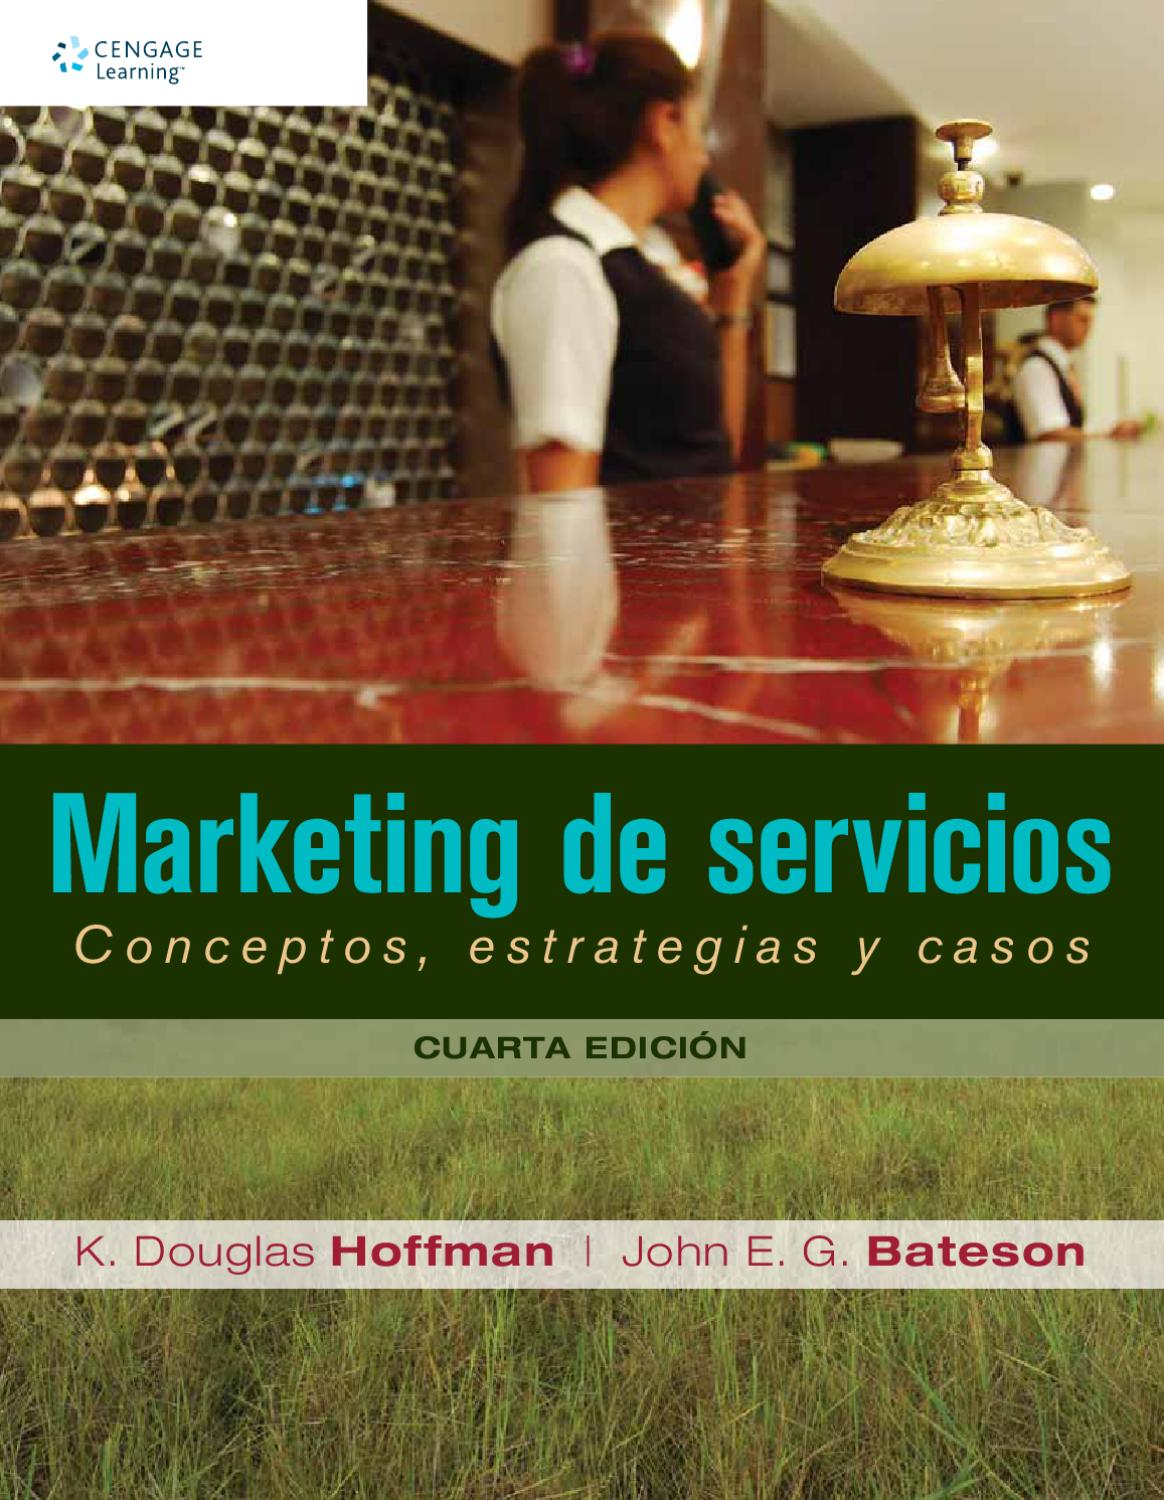 9786074816334 marketing de servicios conceptos estrategias y casos 4a ed hoffman cengage by cengage learning editores issuu